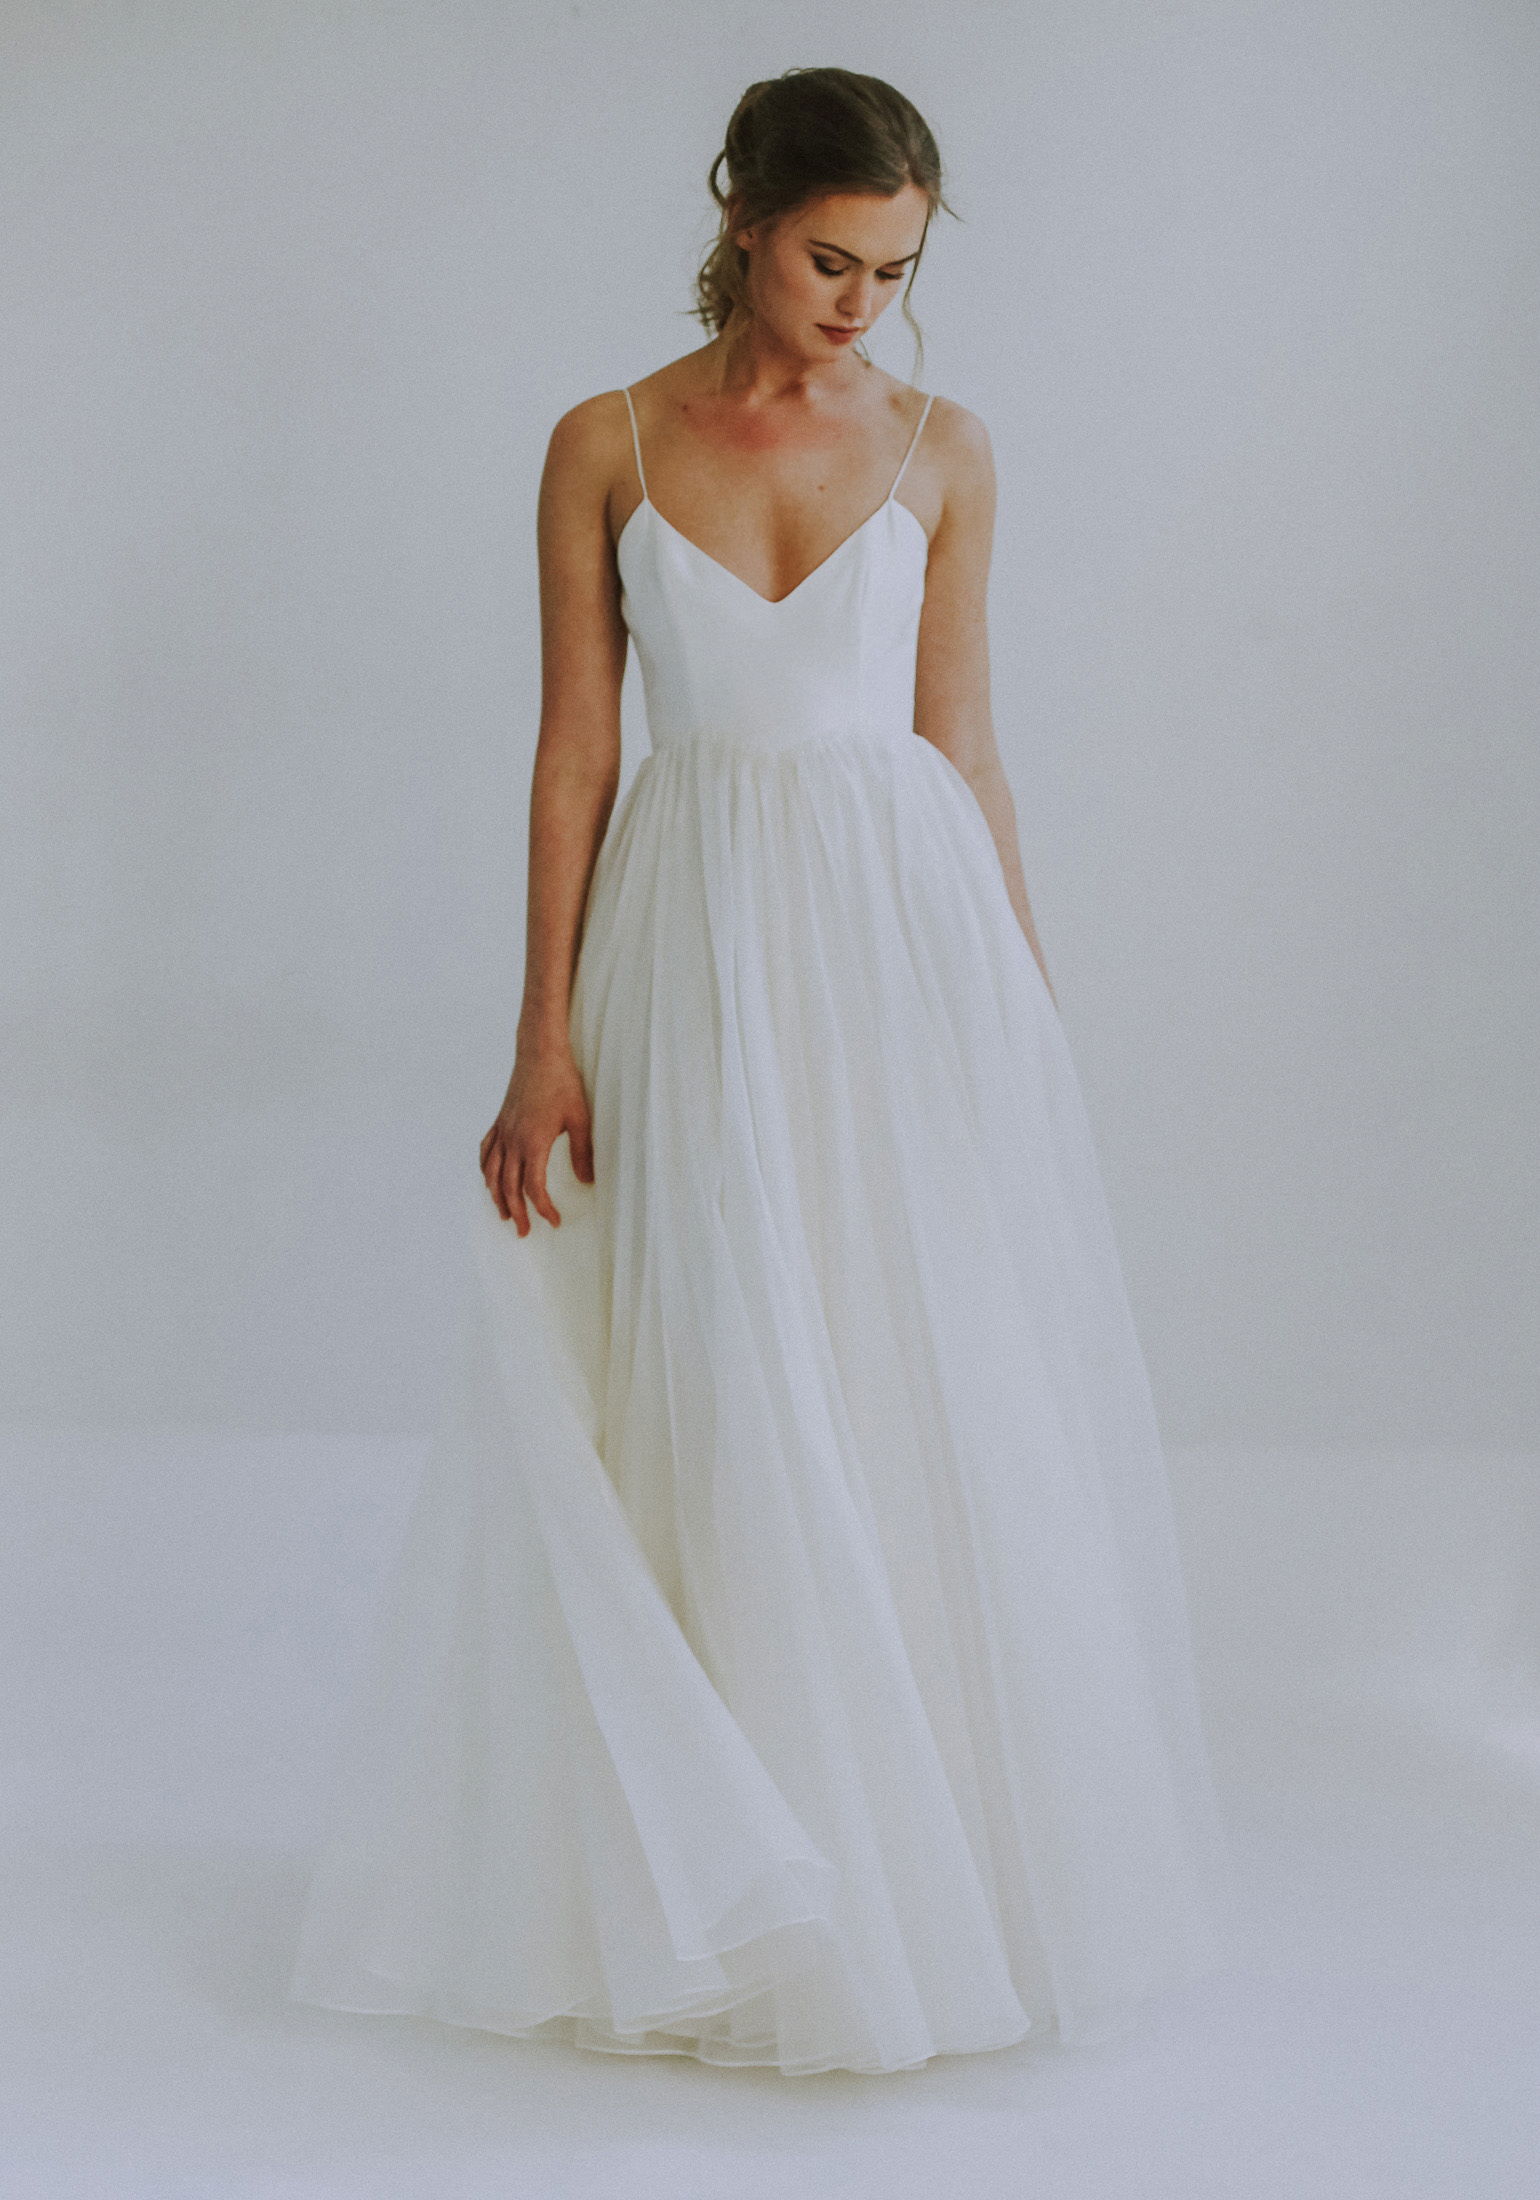 Simple White Wedding Dress Weddinggown In 2020 A Line Wedding Dress Wedding Dresses Simple Bridal Gowns